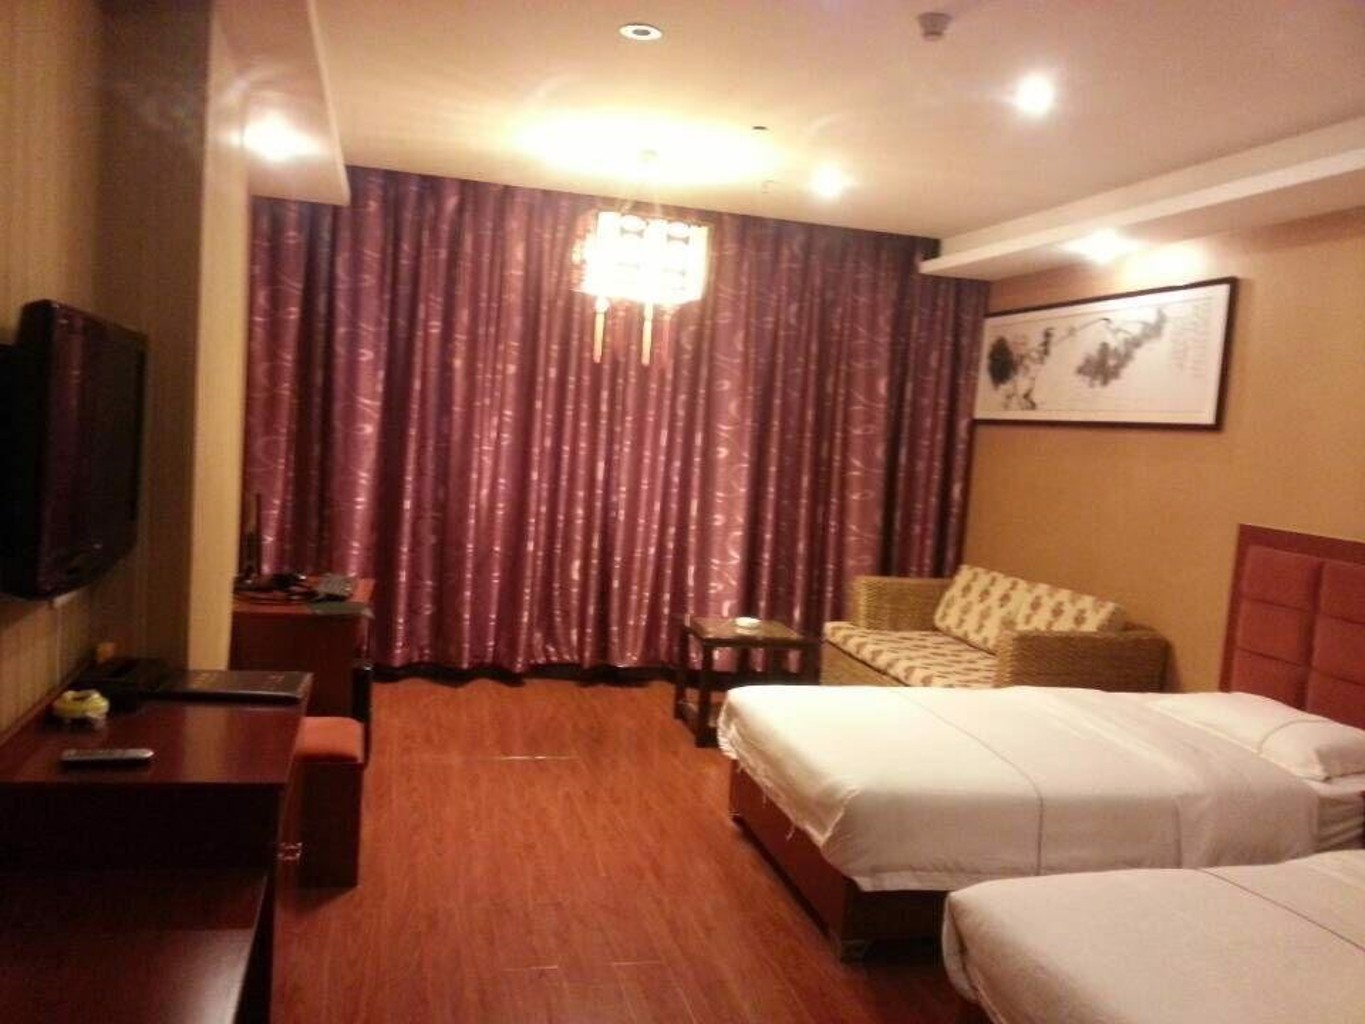 Gallery image of Tianyu Hotel